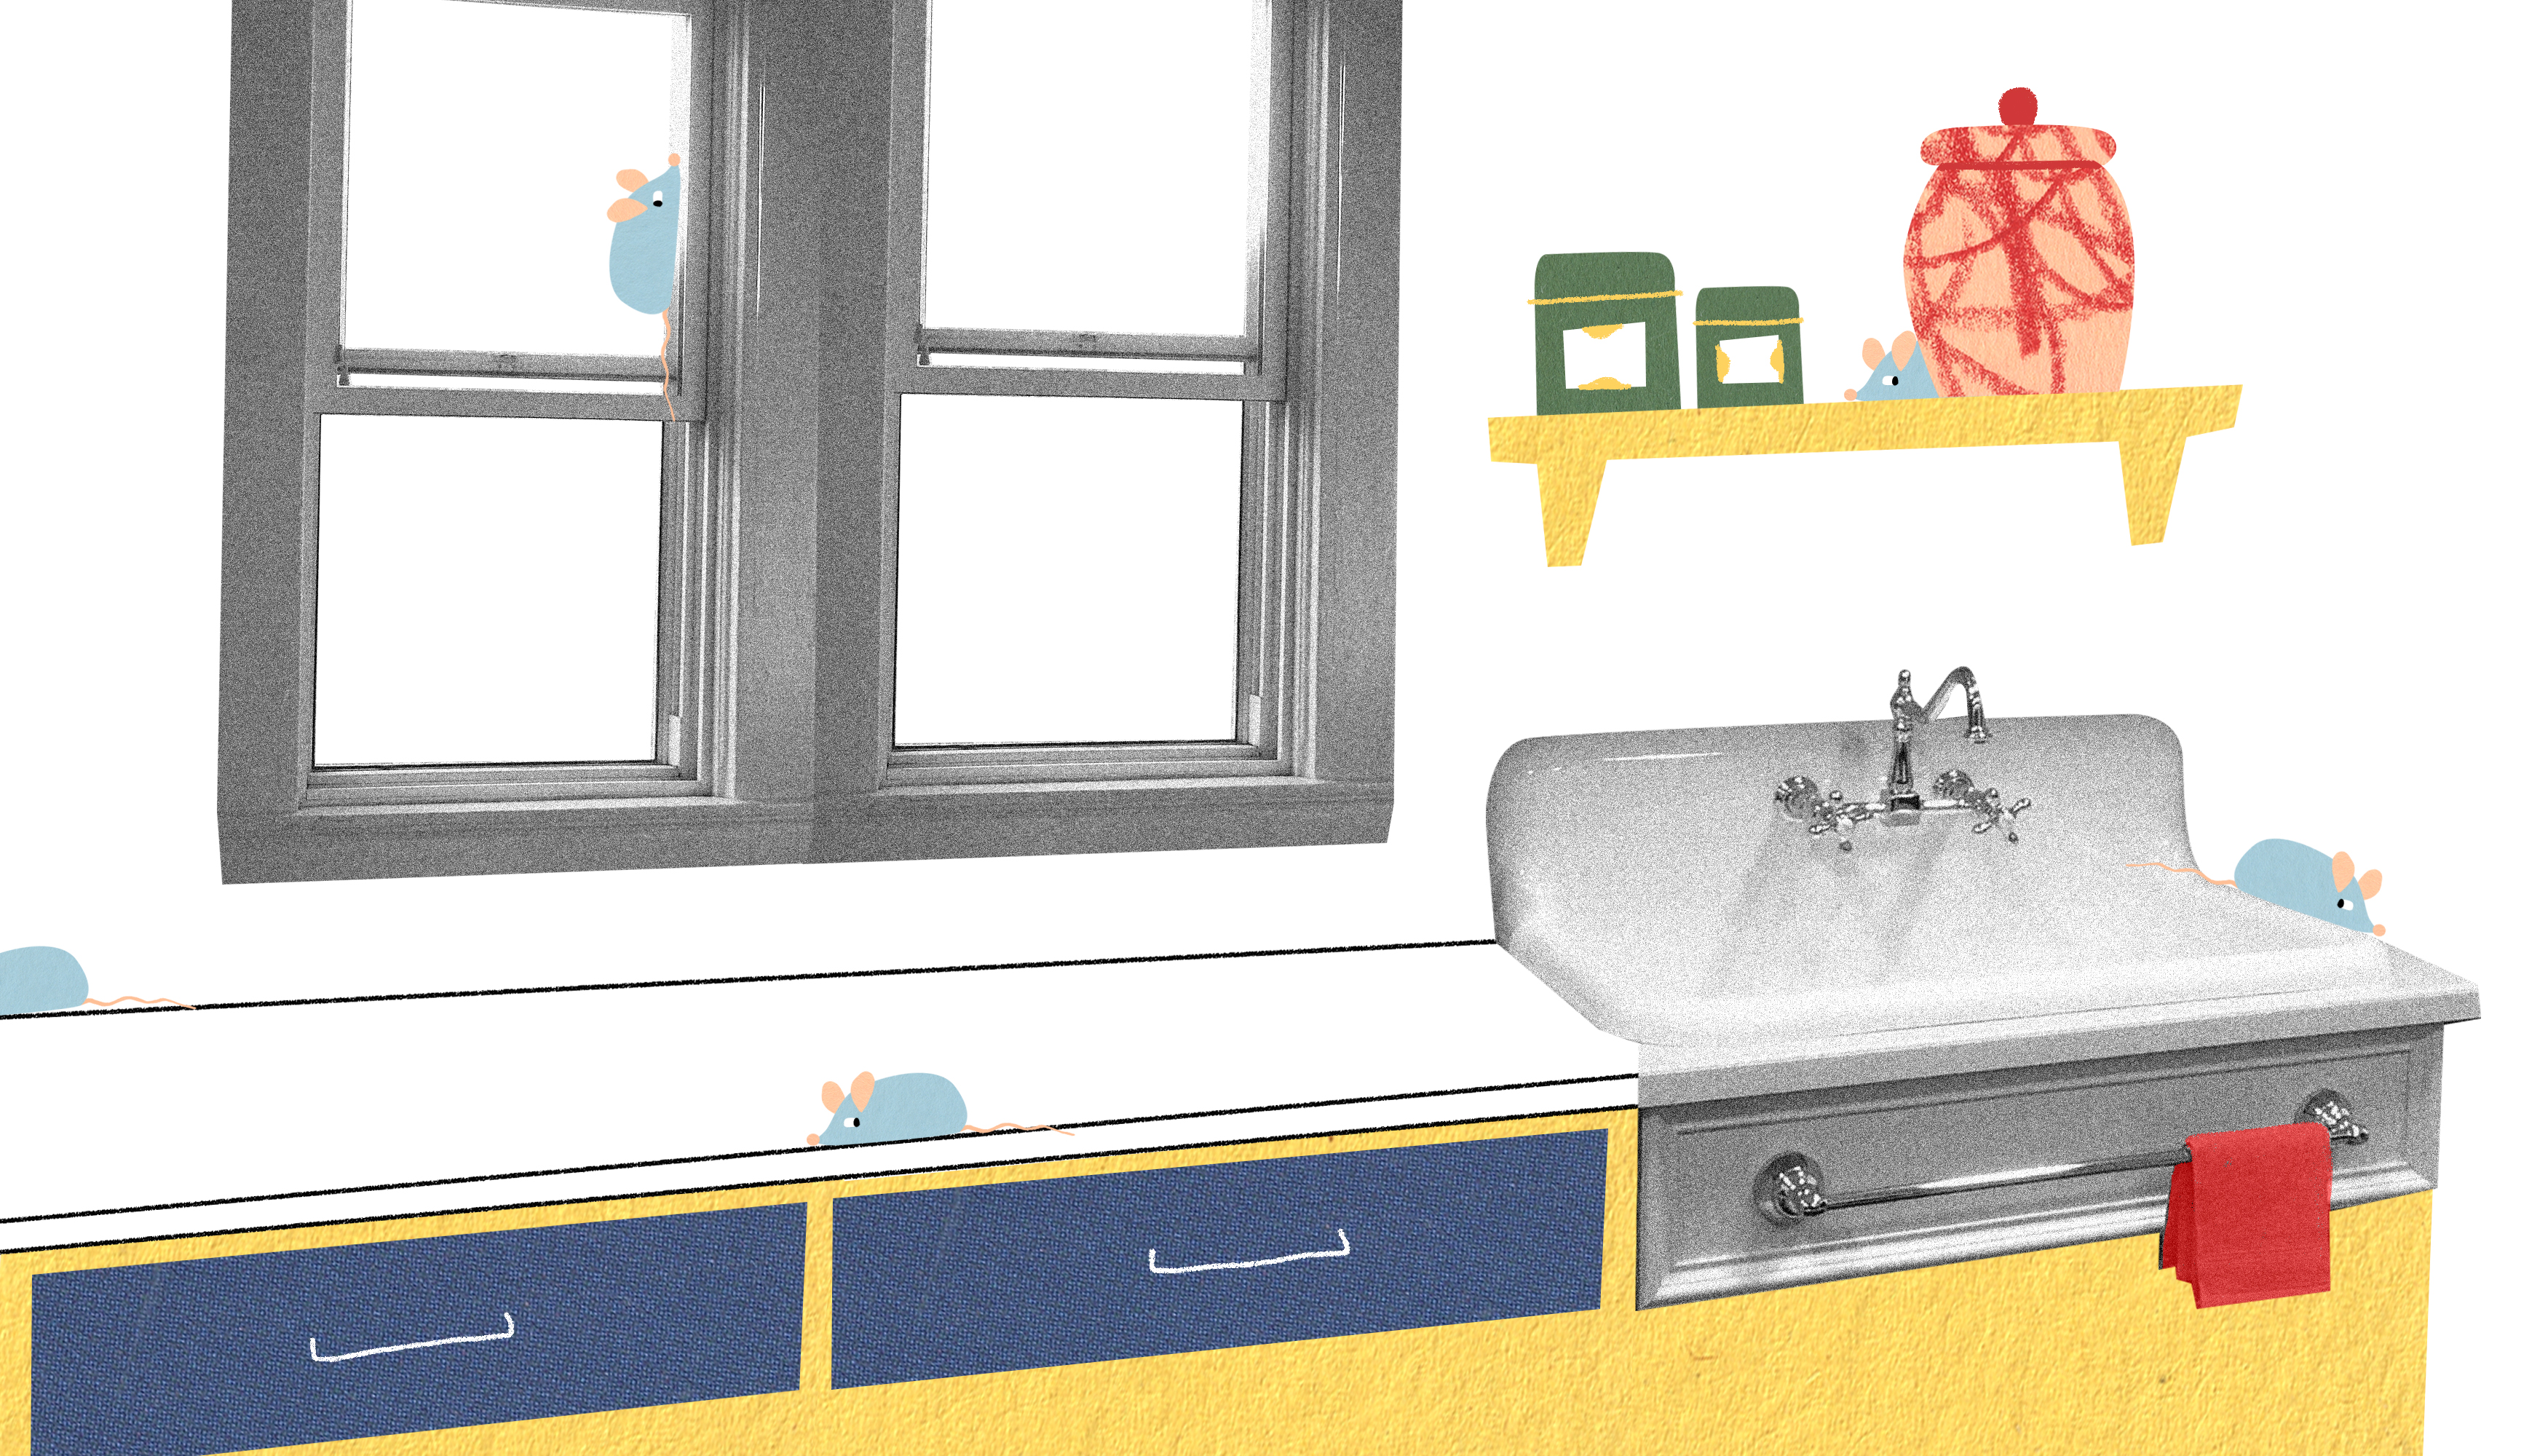 A clean and clear kitchen counter with a sink to the right. There's a small shelf above the sink with various jars. A rag hangs on a drawer handle below the sink. Illustration.